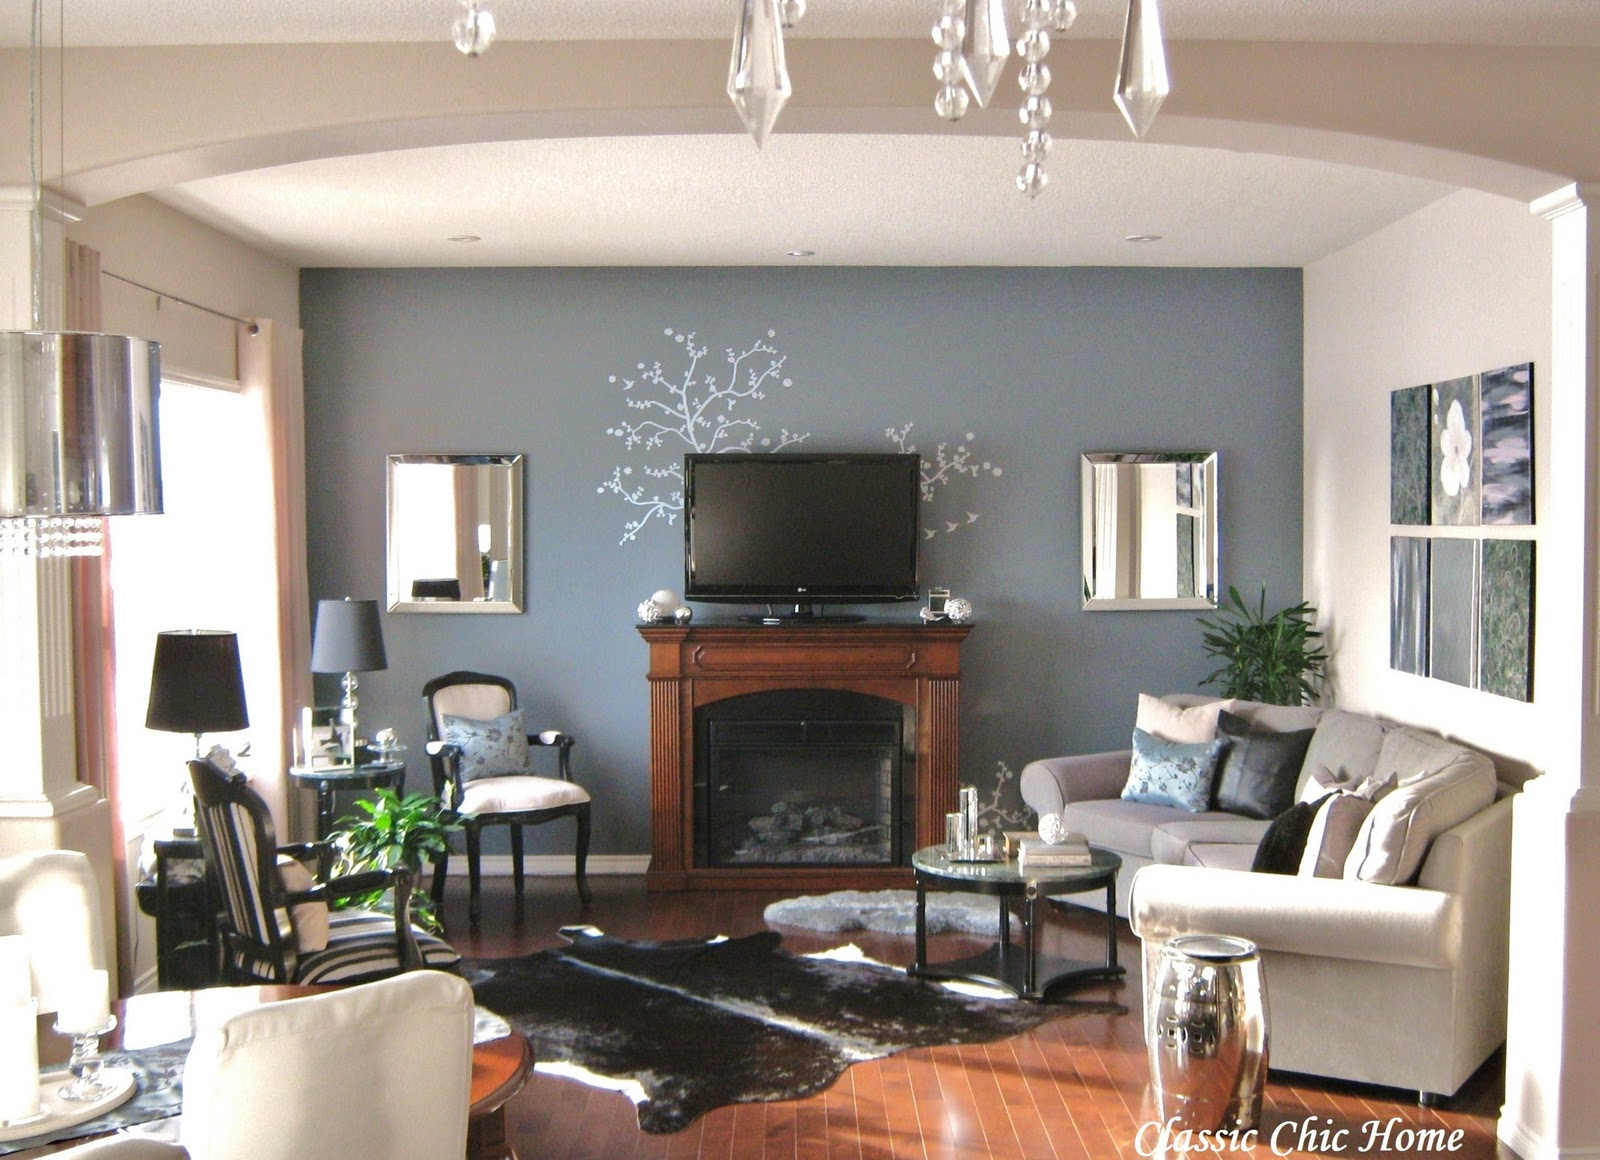 Beau Living Room With Fireplace Design Ideas